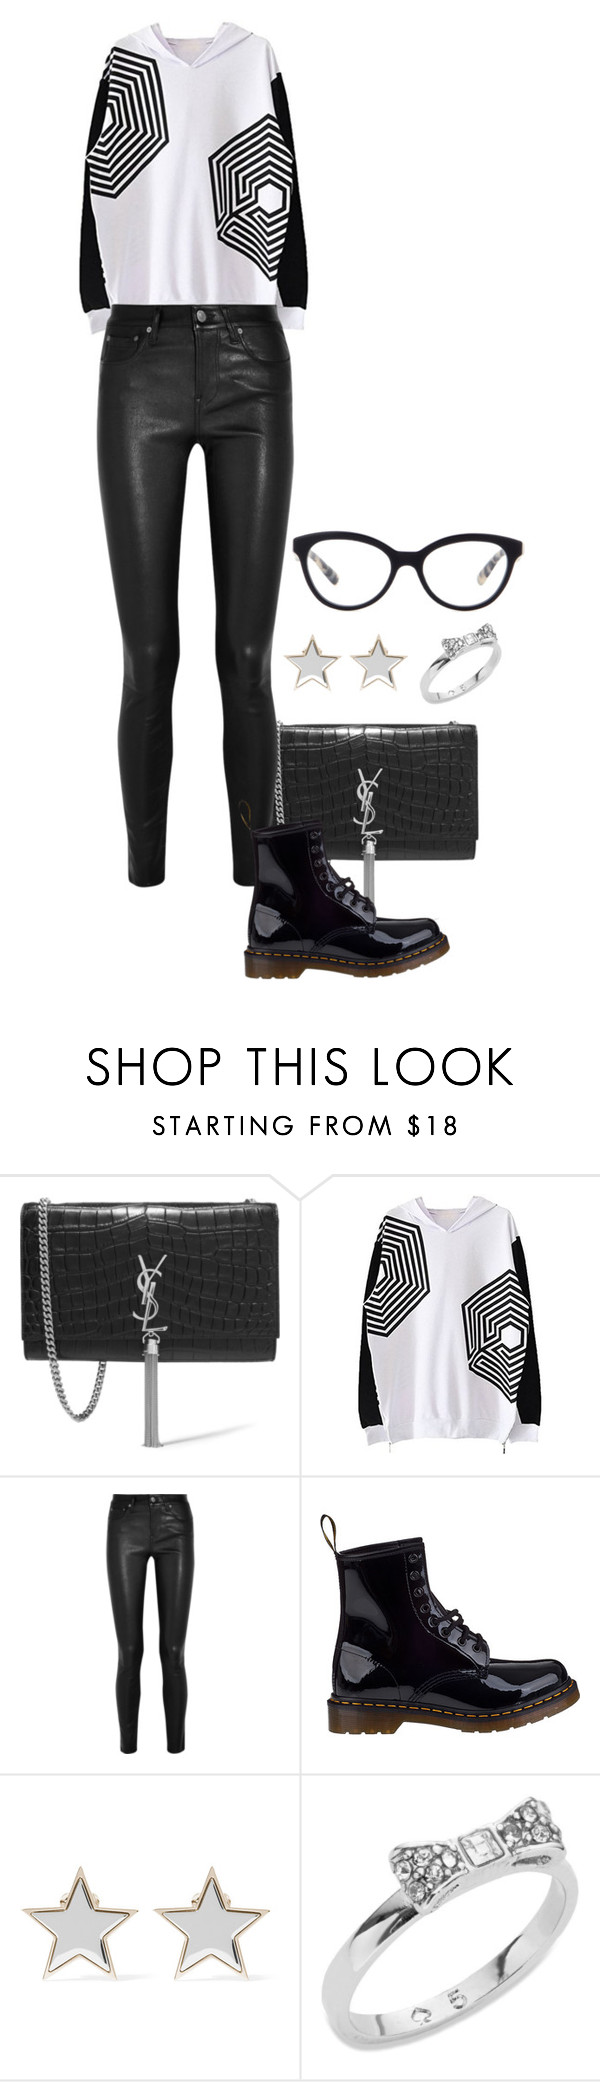 """Overdose."" by foreverforbiddenromancefashion ❤ liked on Polyvore featuring Yves Saint Laurent, Helmut Lang, Dr. Martens, Givenchy, Kate Spade, Prada, women's clothing, women, female and woman"